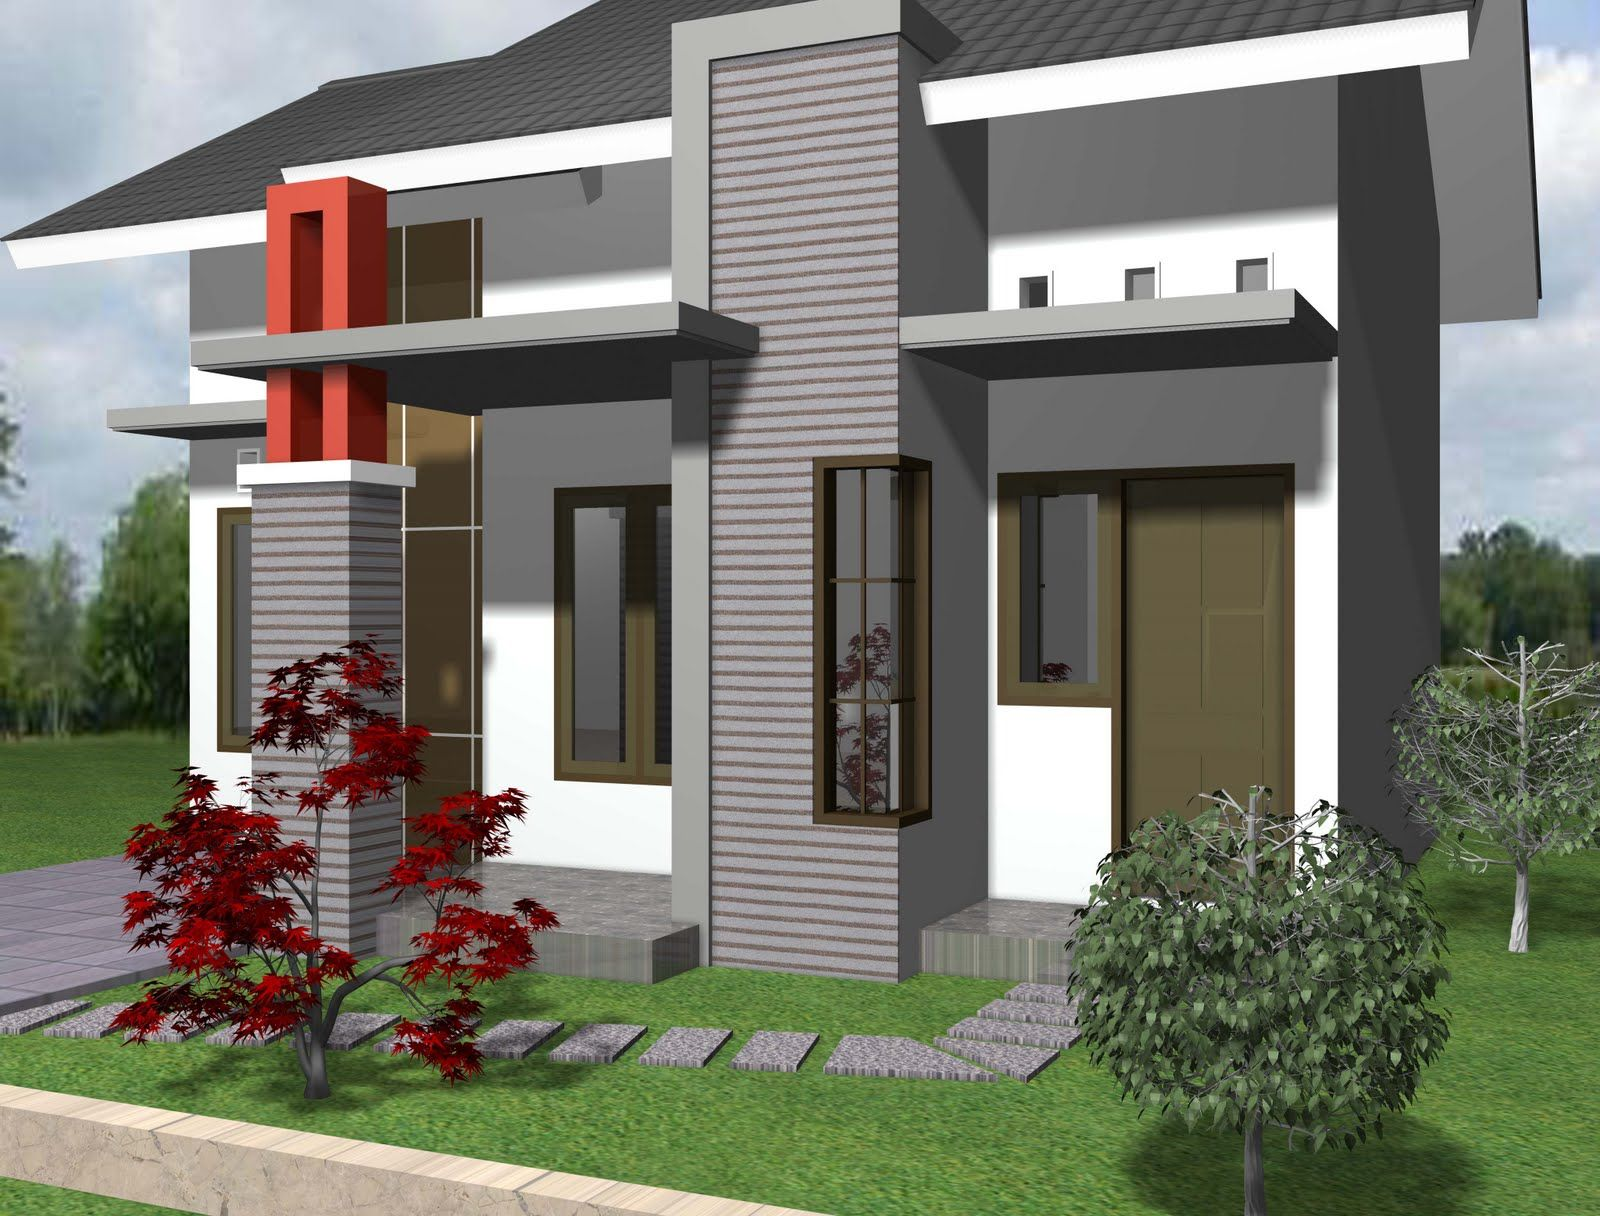 Model Rumah Minimalis Image Ideas For The House Pinterest